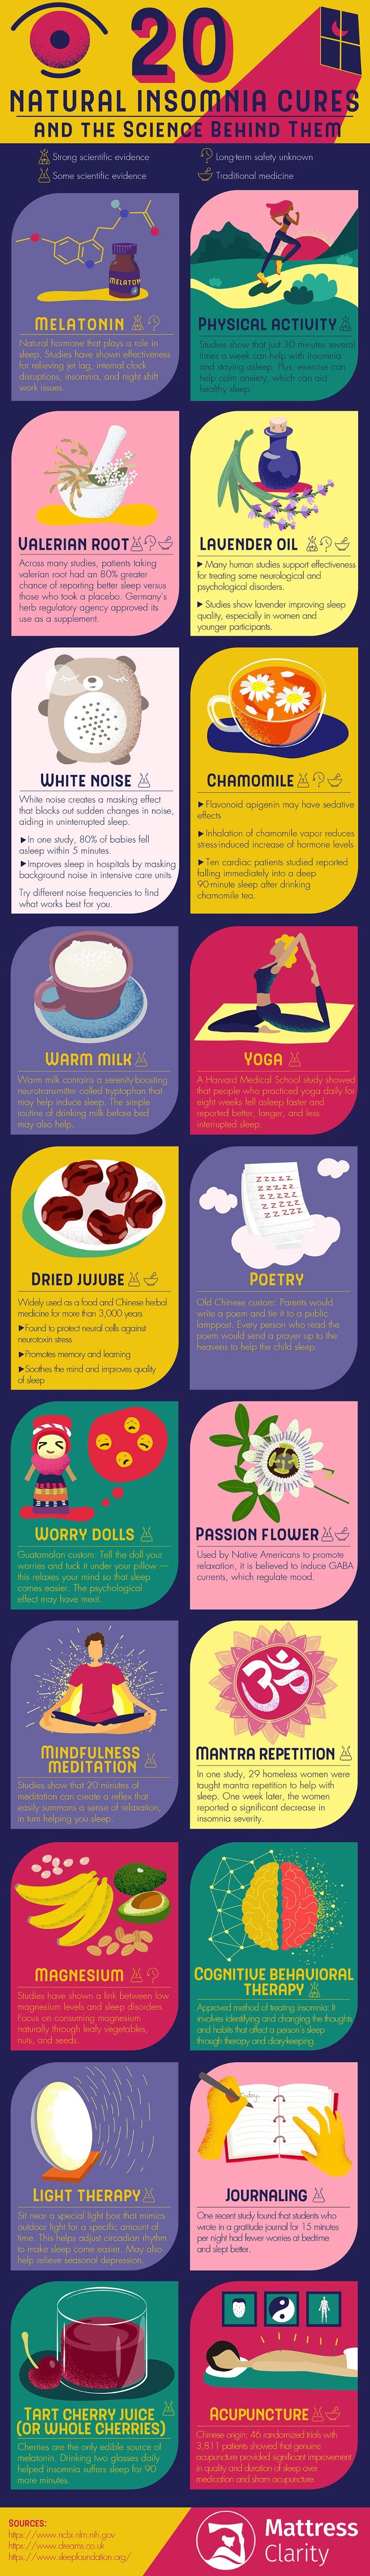 20 Natural Insomnia Cures And the Science Behind Them #infographic